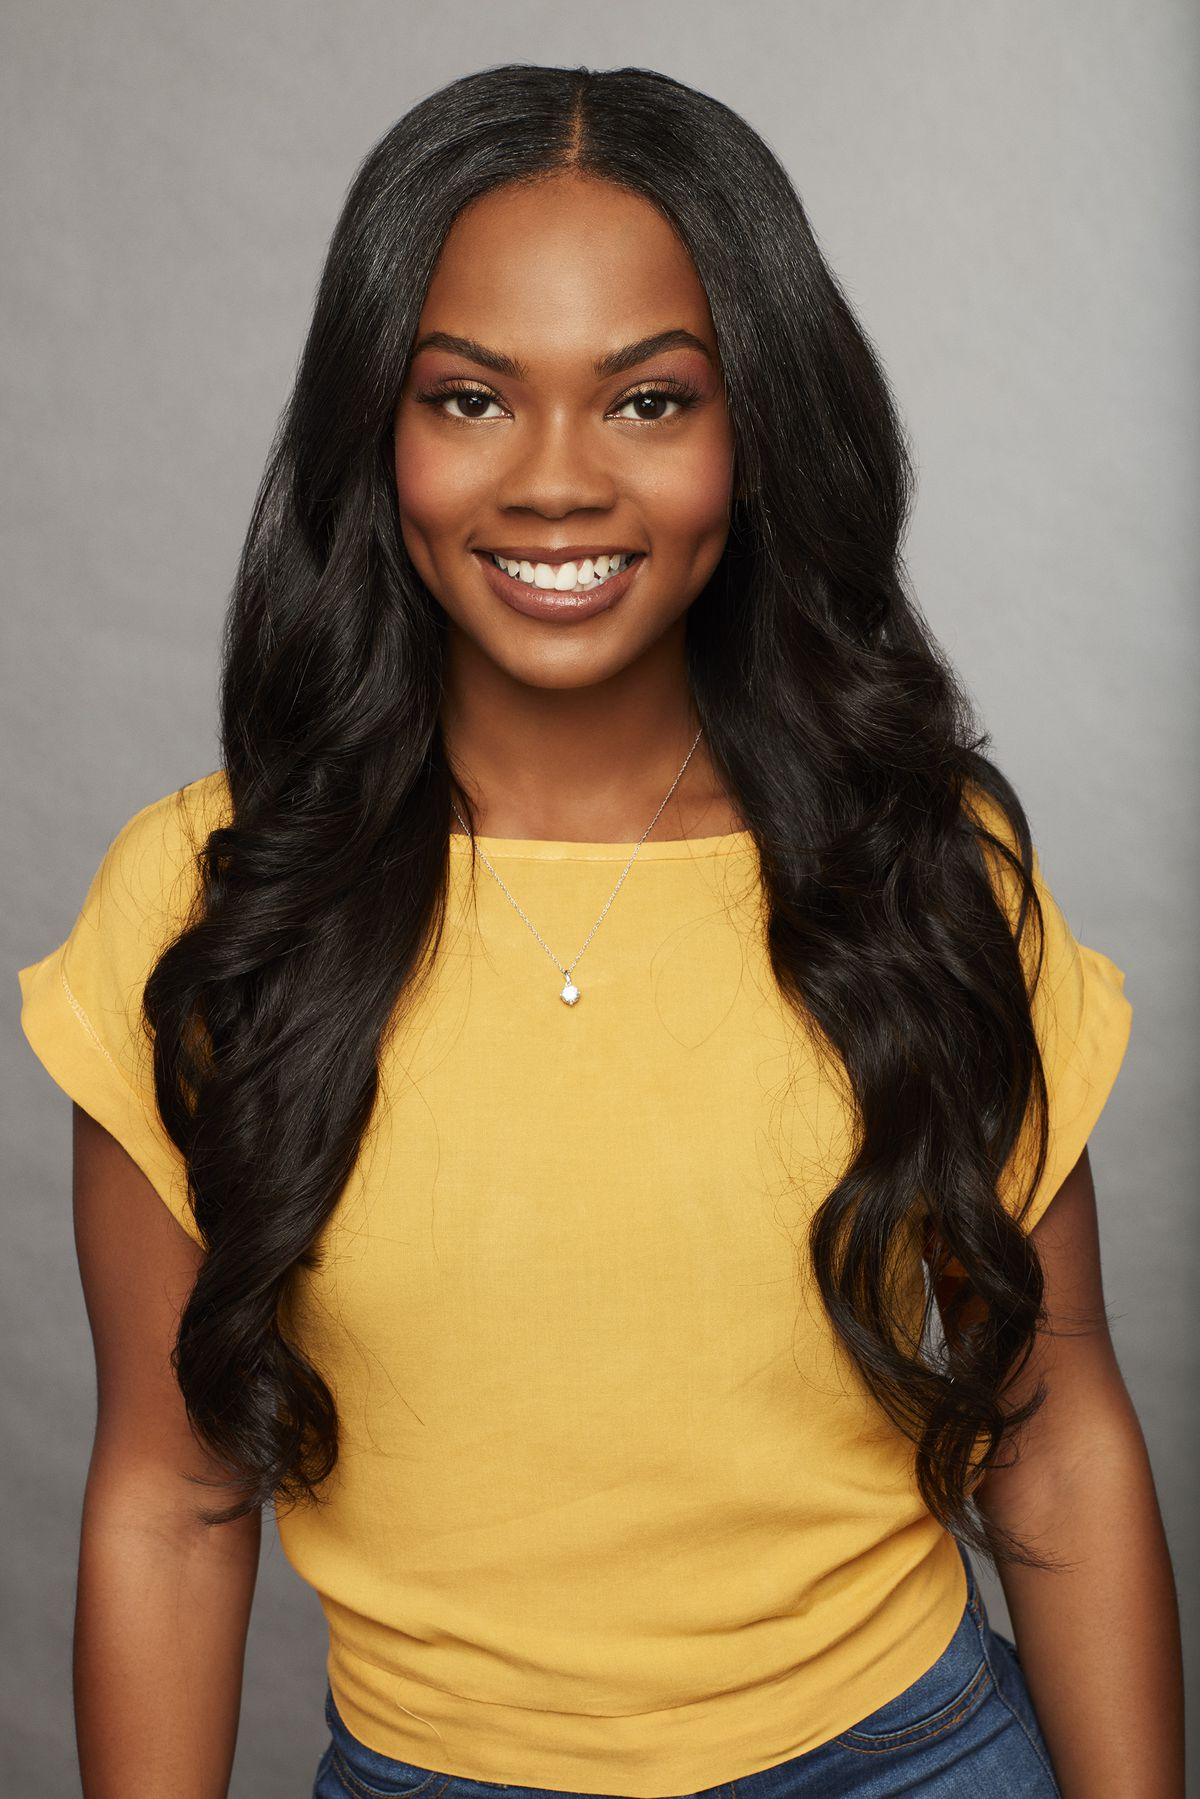 2018 S Bachelor Contestants Ranked By Going Out Top Racked